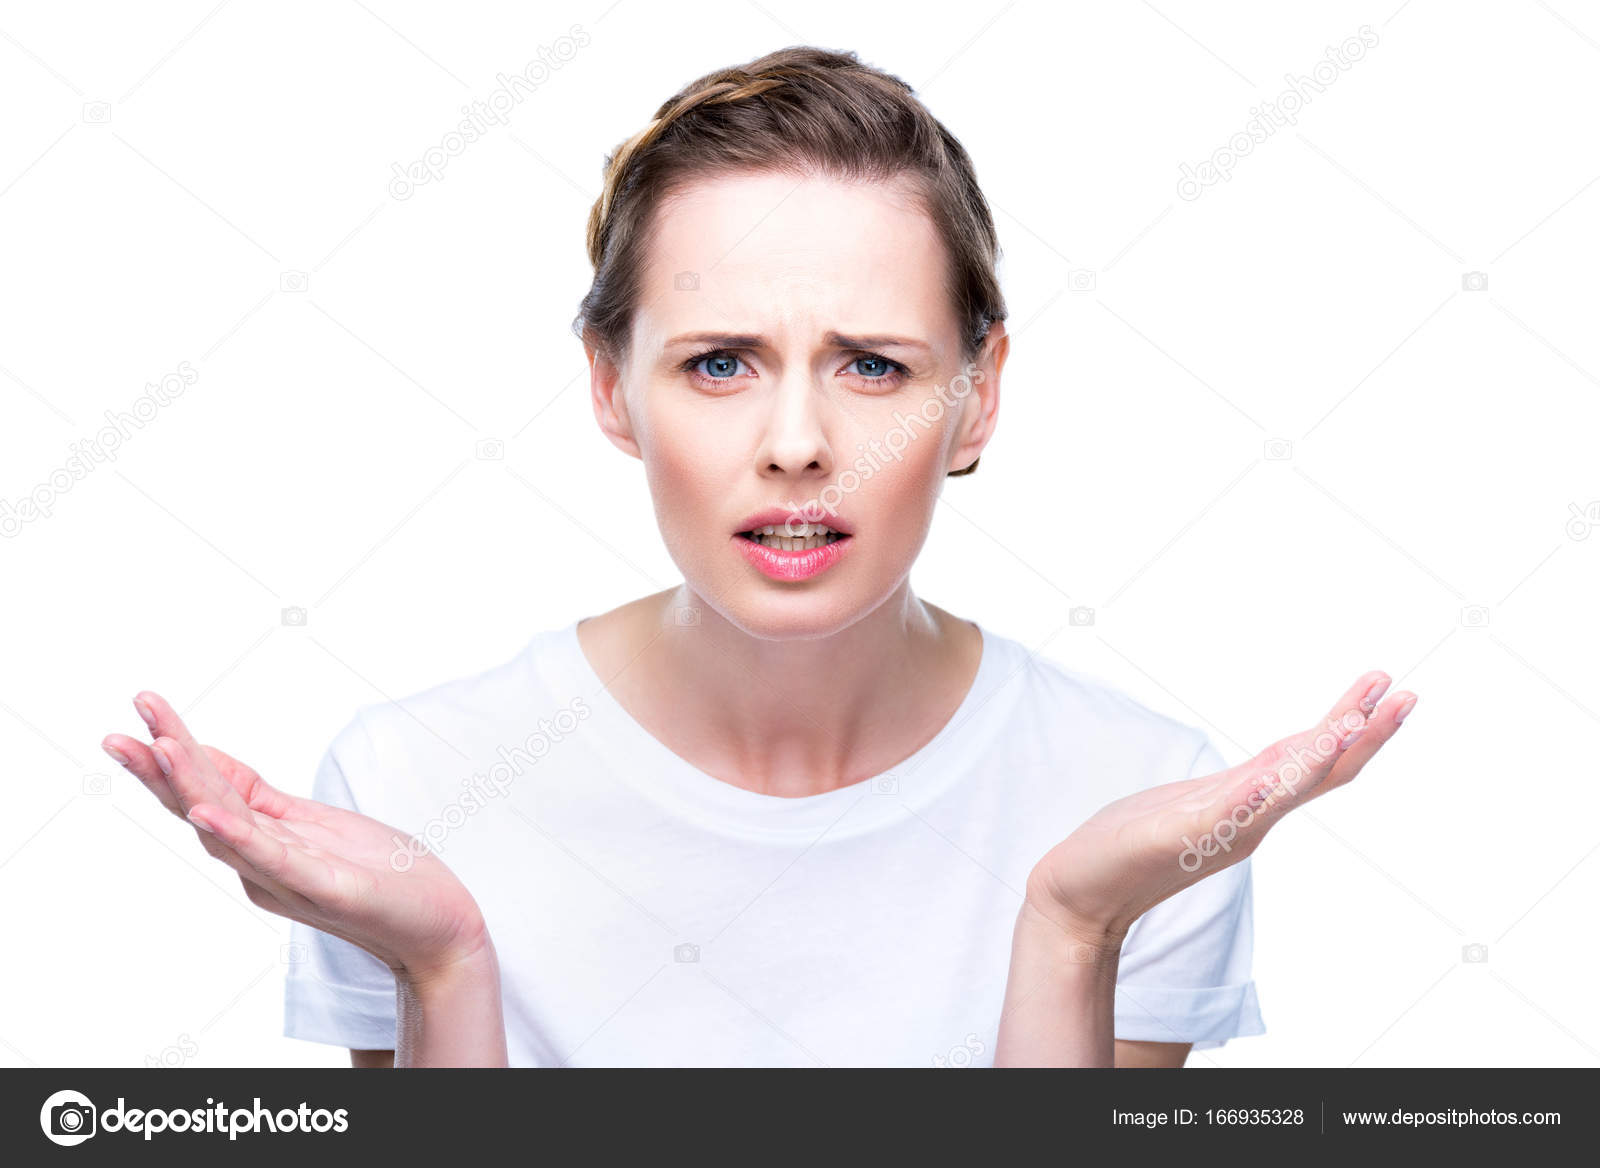 confused woman with shrug gesture stock photo dmitrypoch 166935328